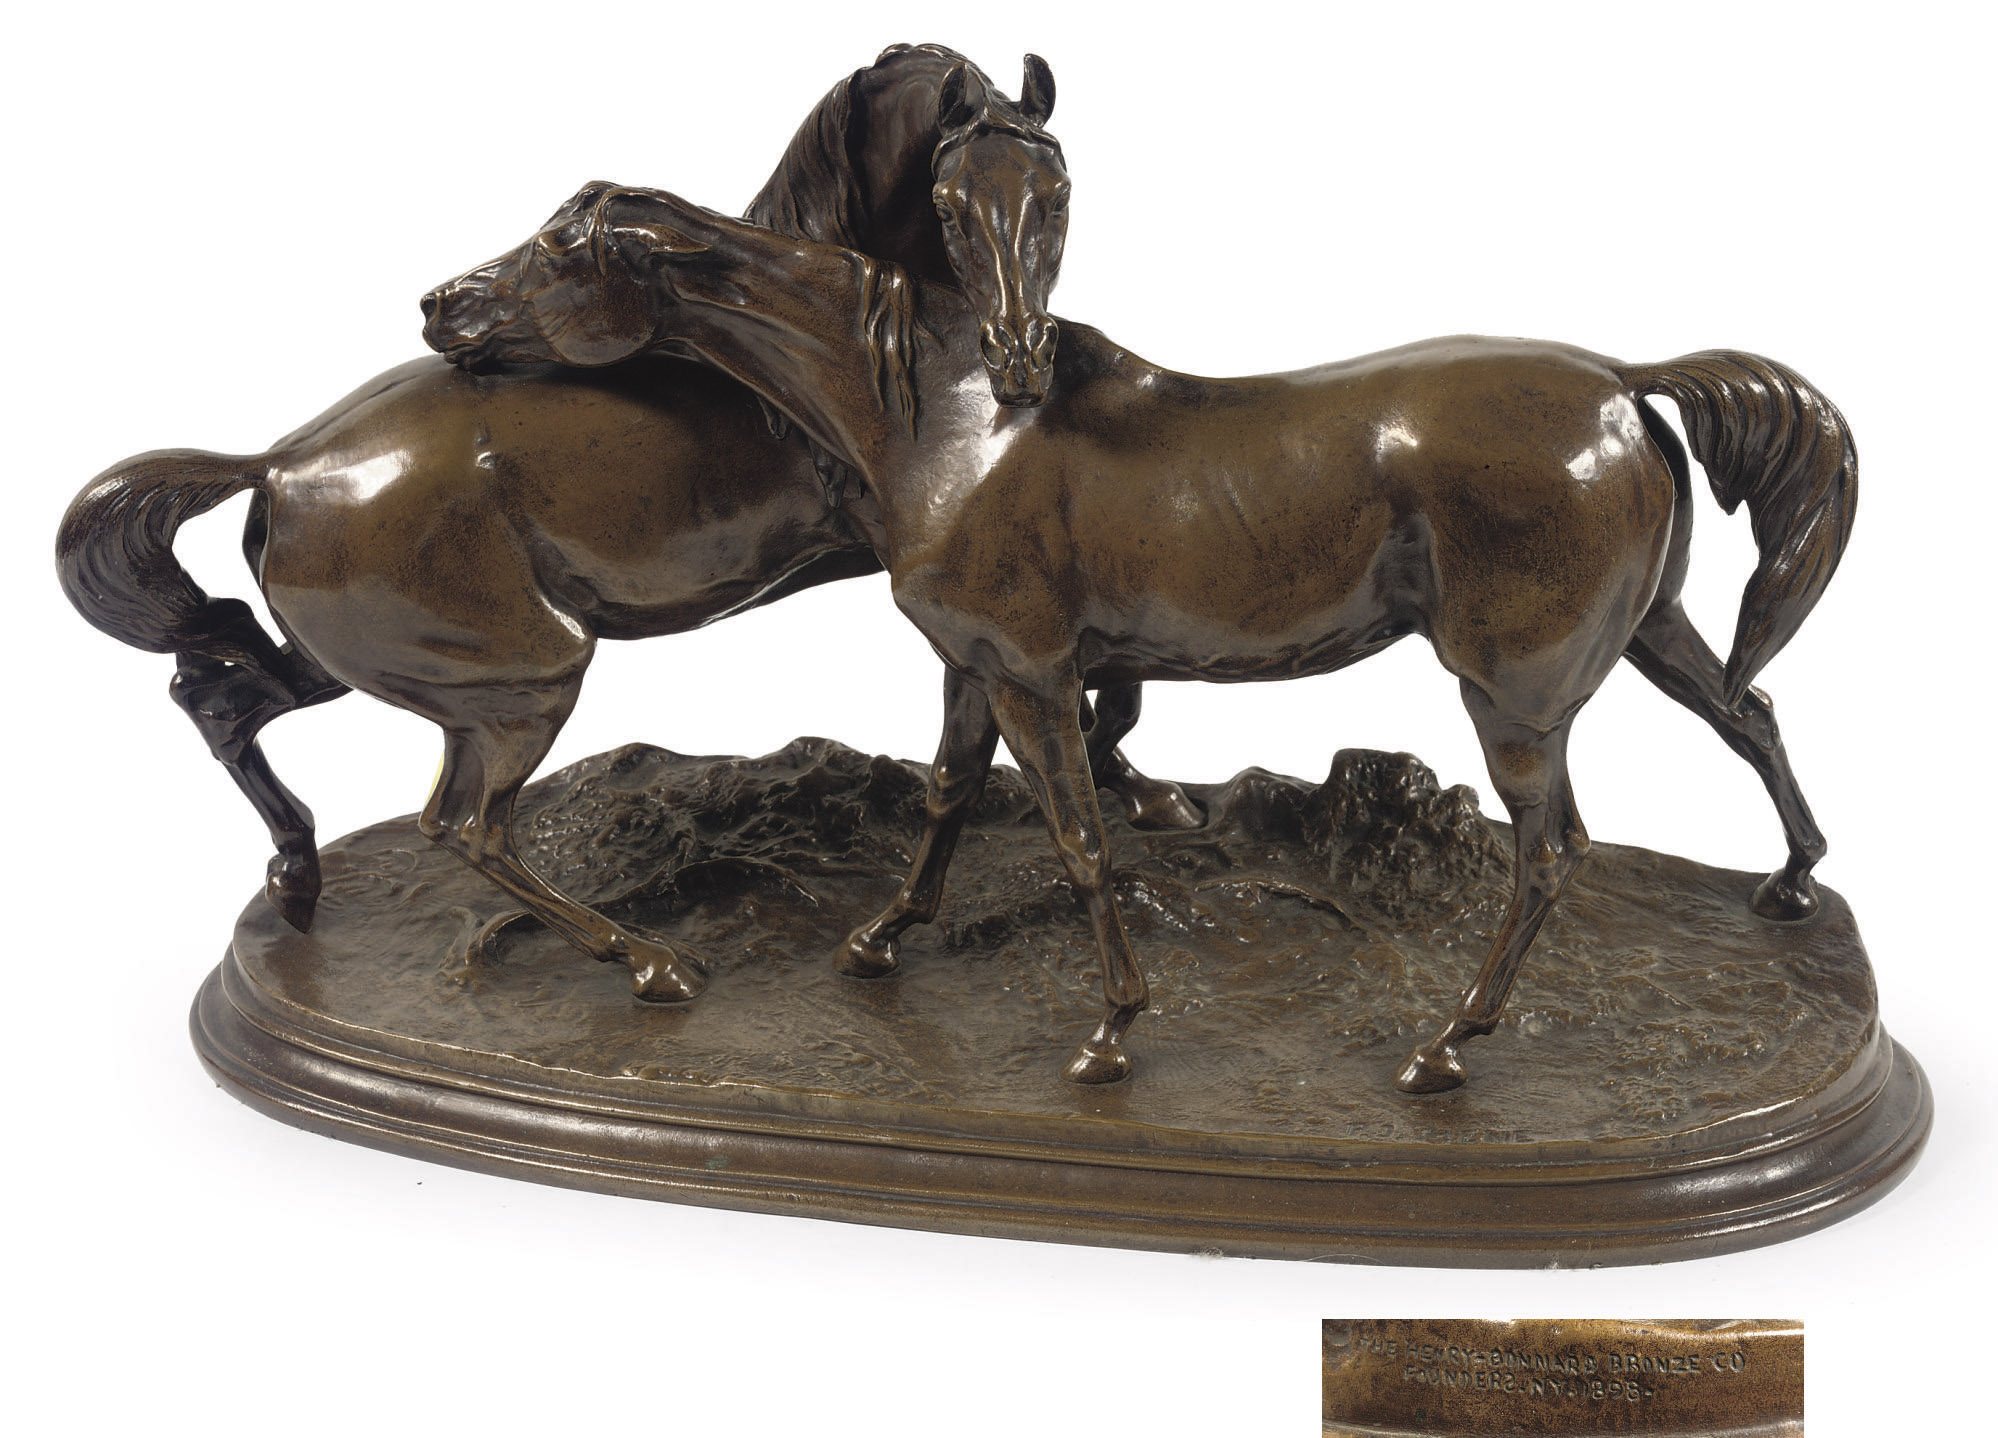 AN AMERICAN/FRENCH BRONZE EQUESTRIAN GROUP ENTITLED 'L'ACCOLADE'